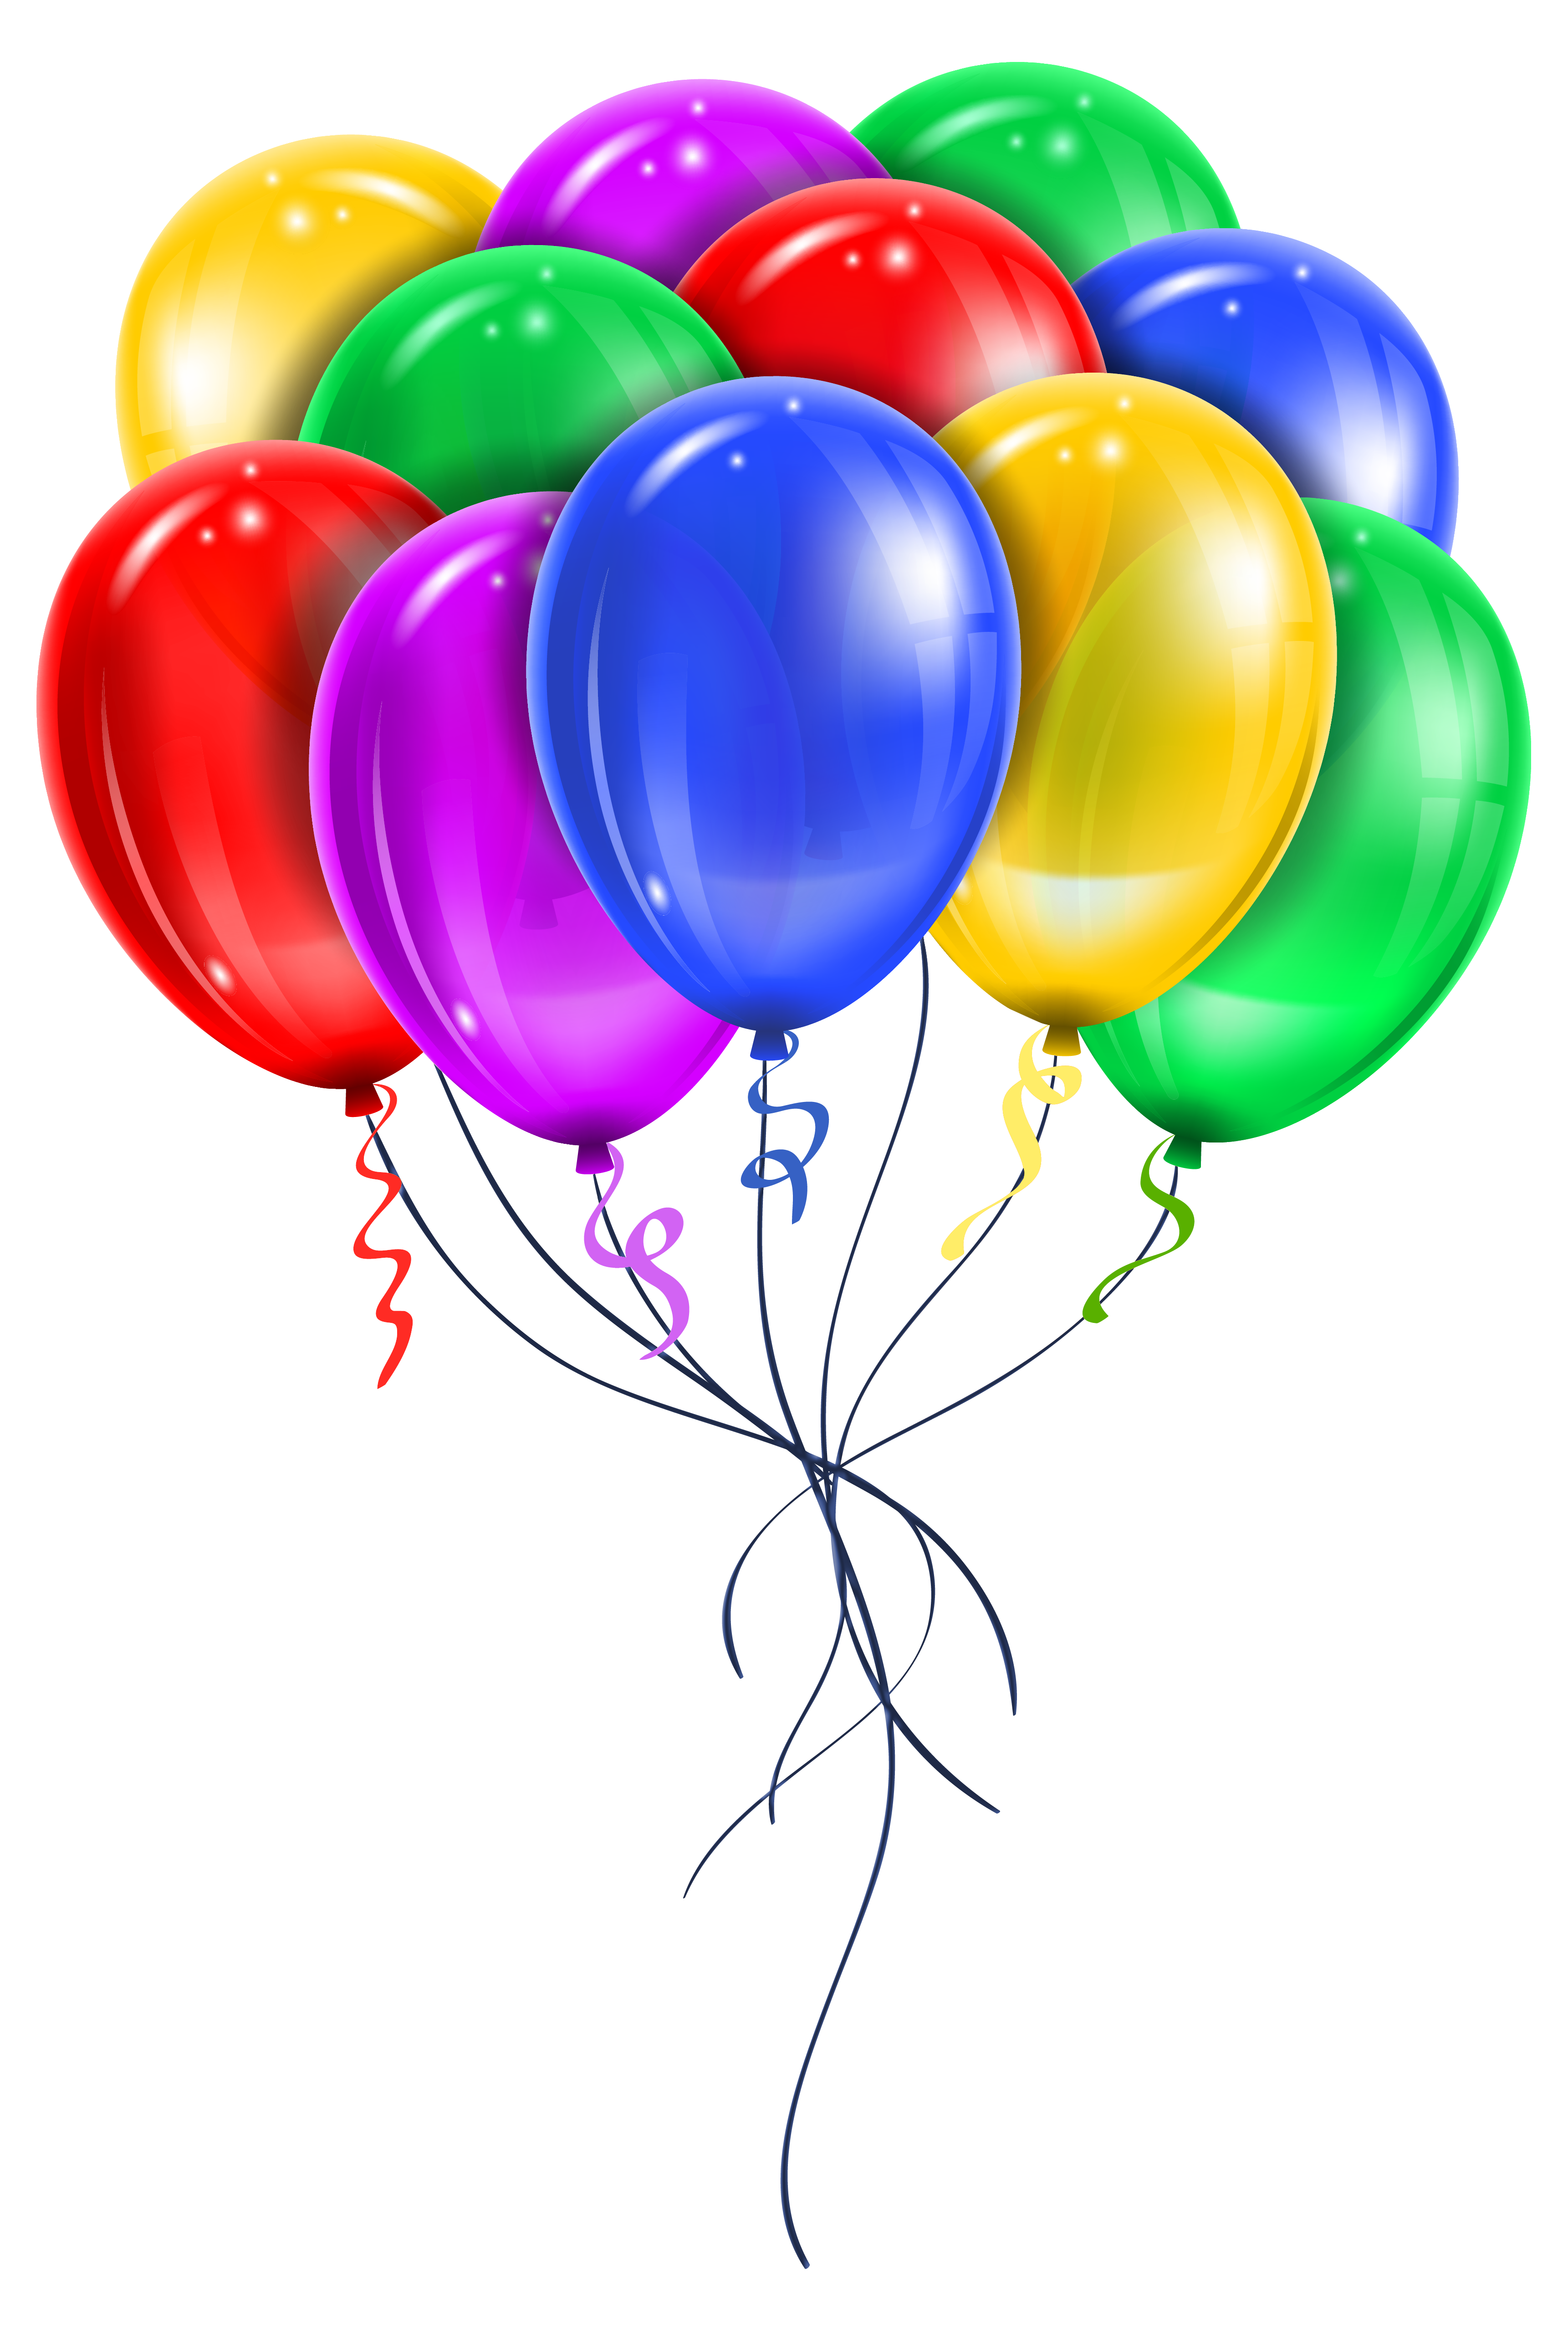 Transparent multi color balloons. Clipart balloon rose gold